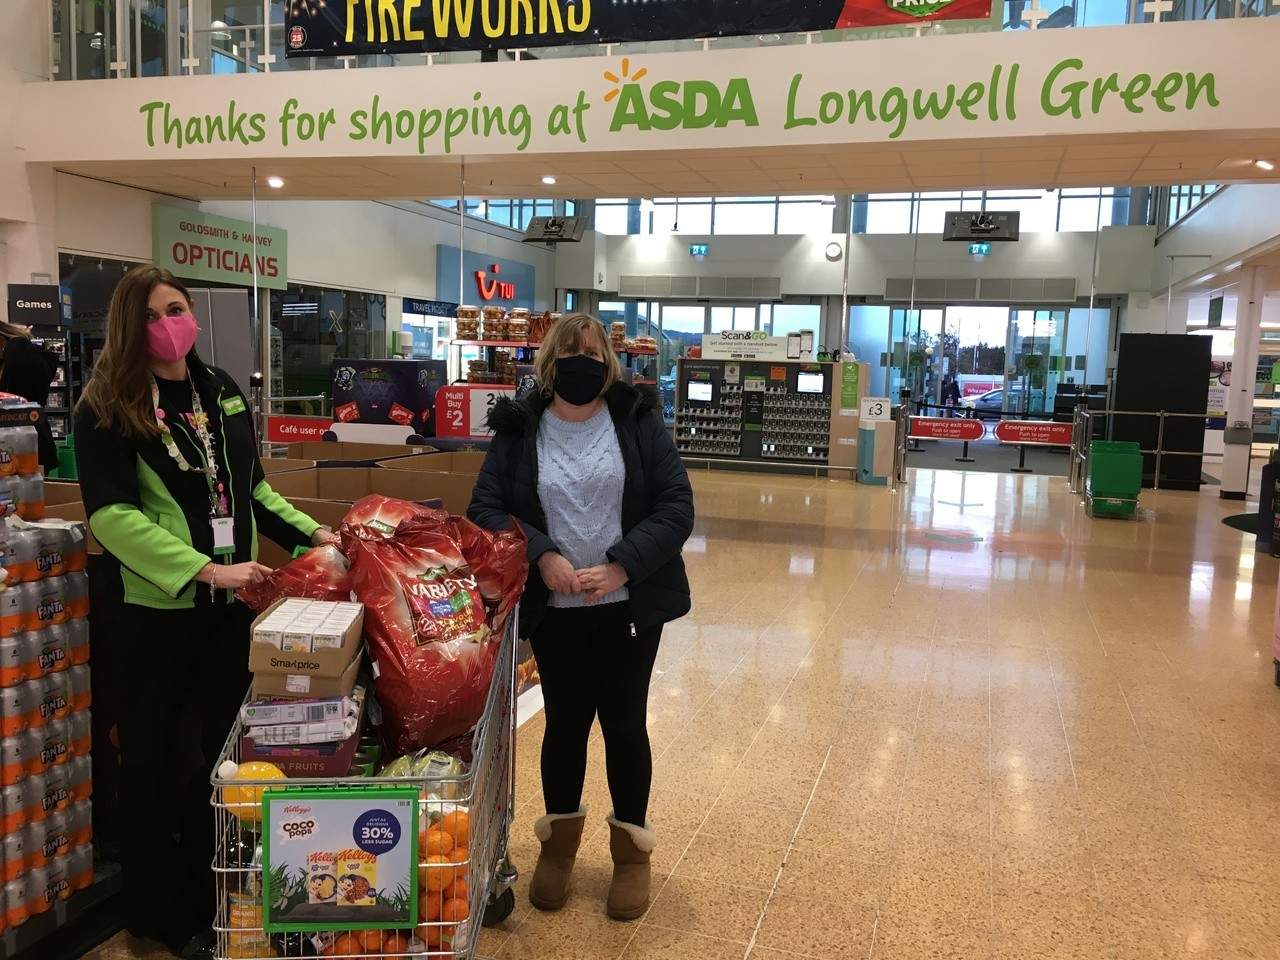 Half-term donation for Juice community project | Asda Longwell Green